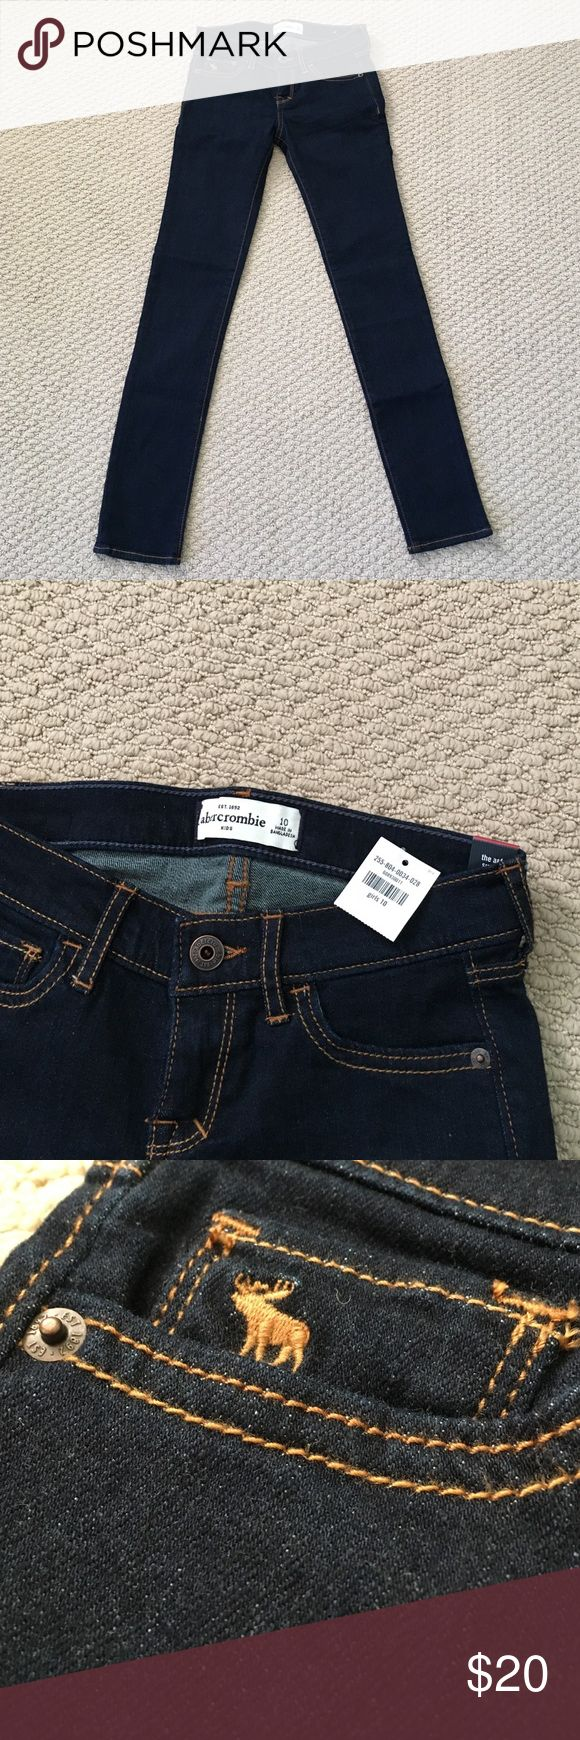 BNWT abercrombie kids • Girl's Super Skinny Sz 10 These girls super skinny jeans are from abercrombie kids and are a classic dark blue color. They're brand new with tags and are super cute! The perfect 'go-to' denim. Size 10 abercrombie kids Bottoms Jeans